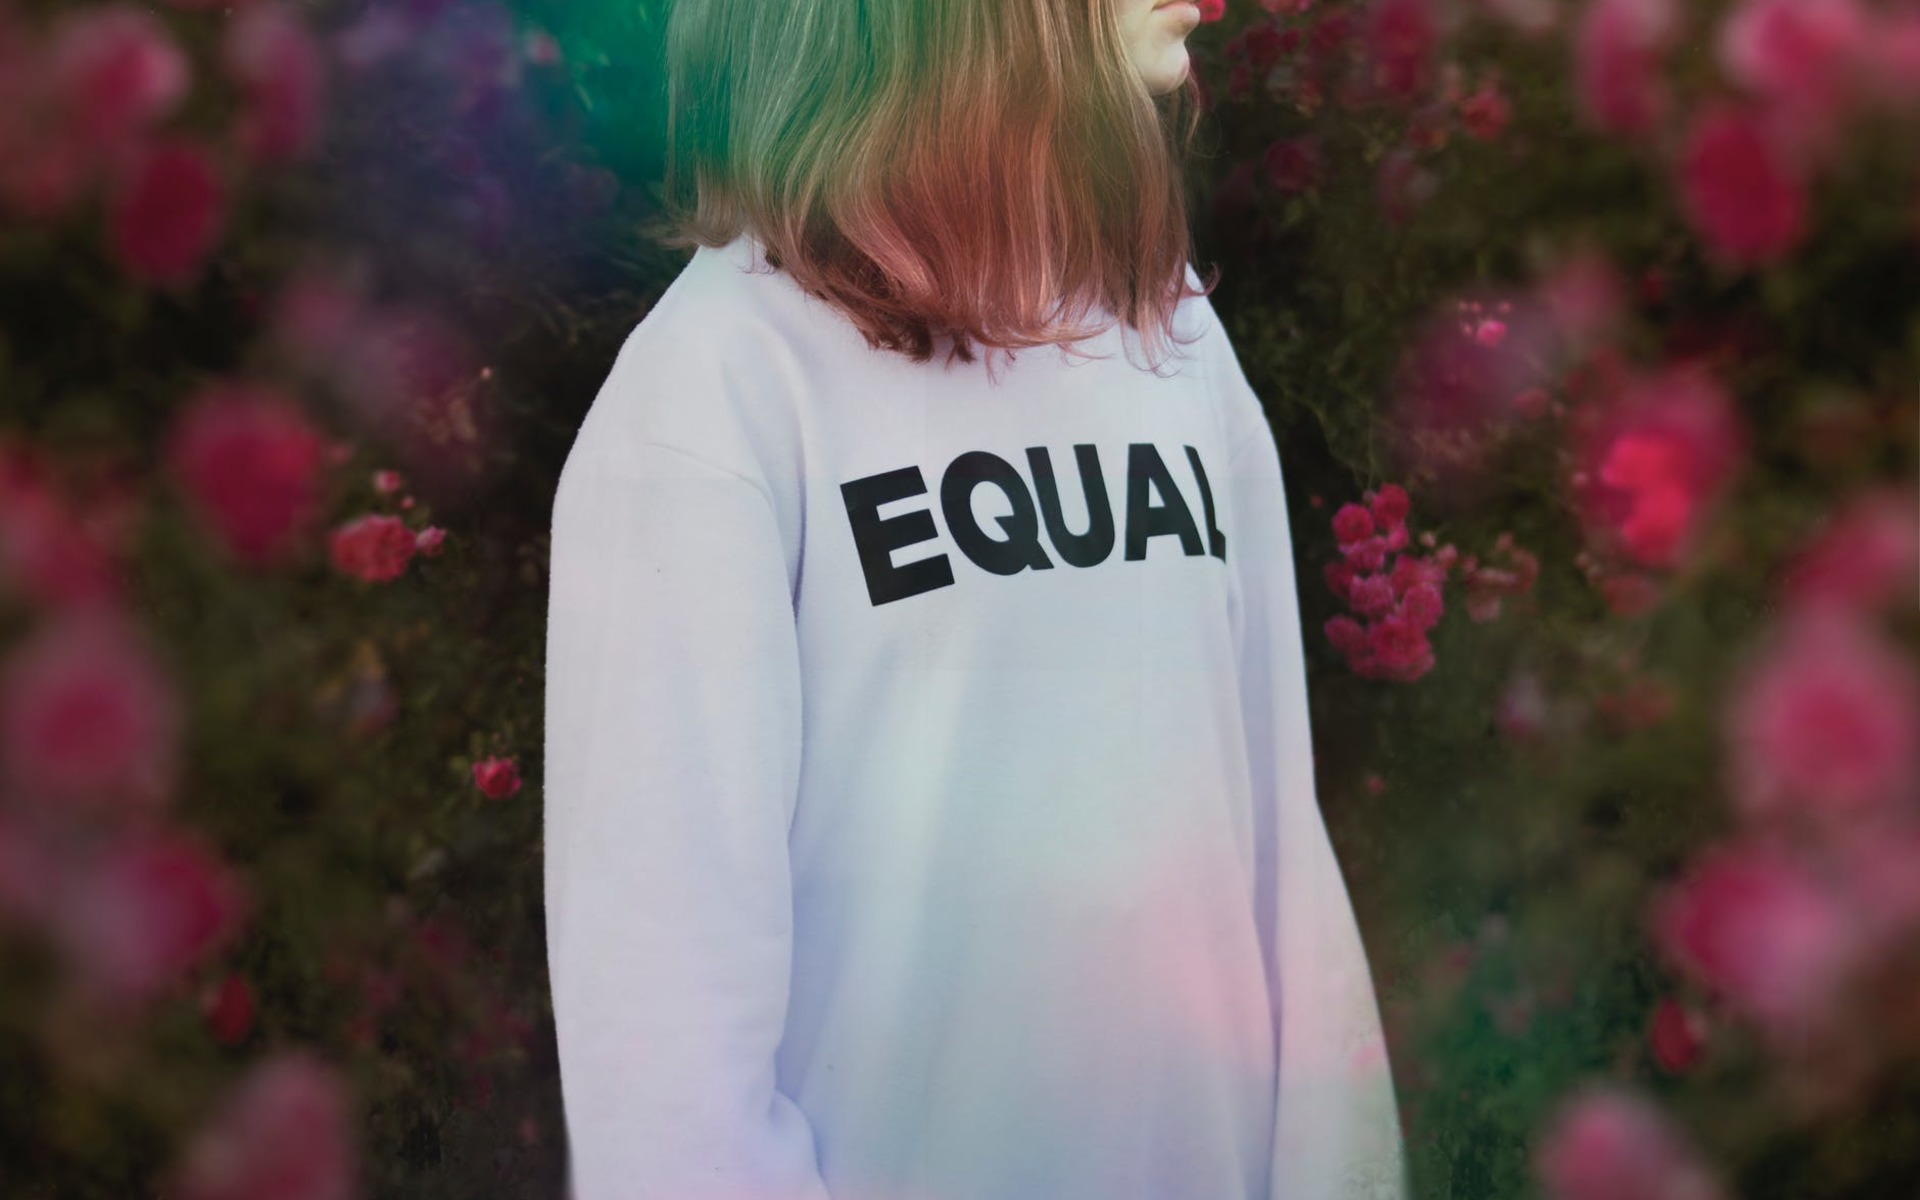 A woman standing in front of a flower wall wearing a white jumper with the words equal on it